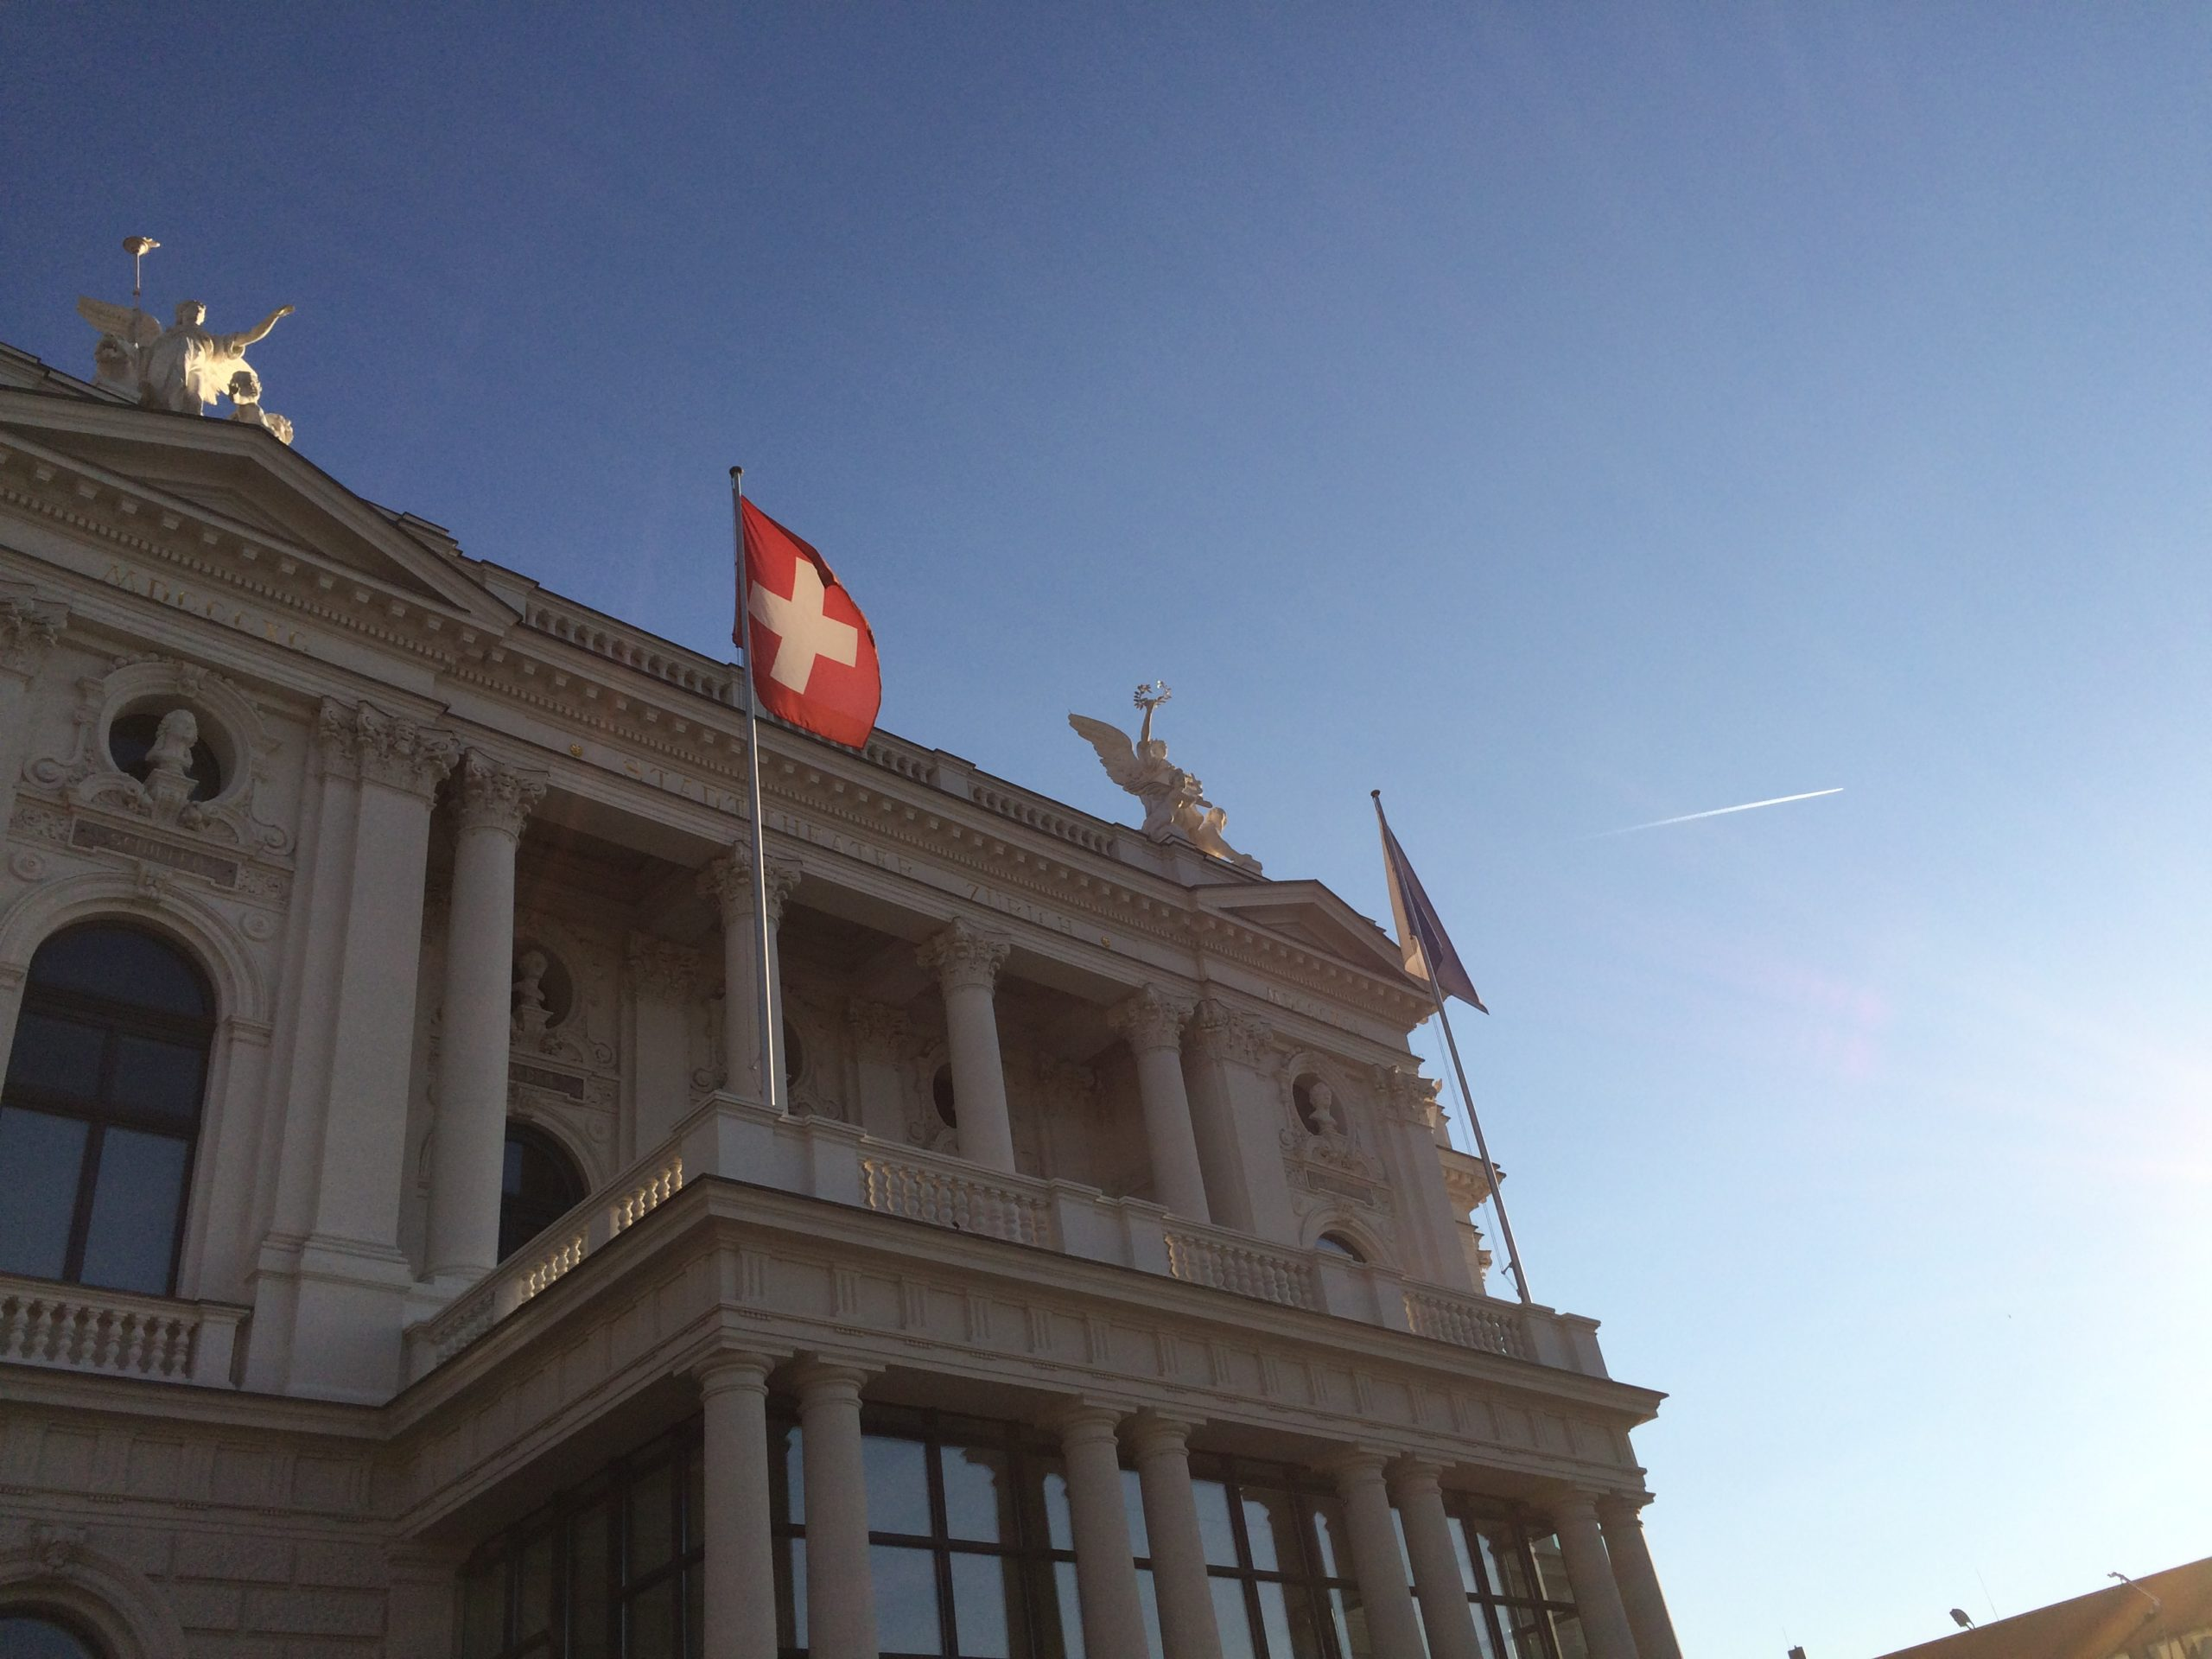 Opernhaus Zurich, Zurich, flag, Switzerland, house, front, architecture, culture, performance, music, ballet